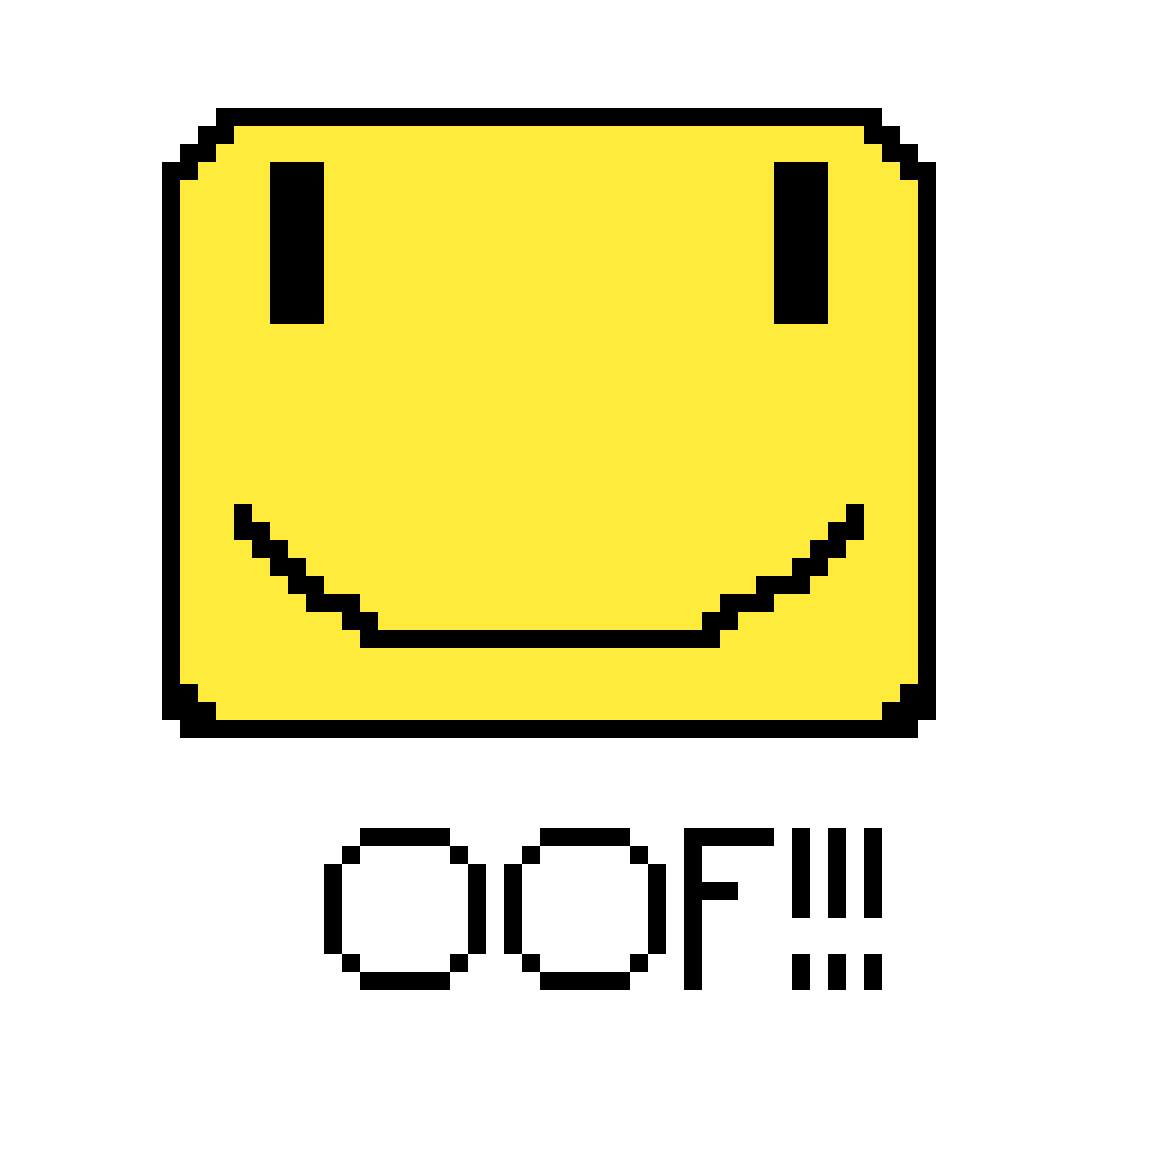 Oof Roblox Face Png Pixilart Roblox Face Enjoy By Epicgamr